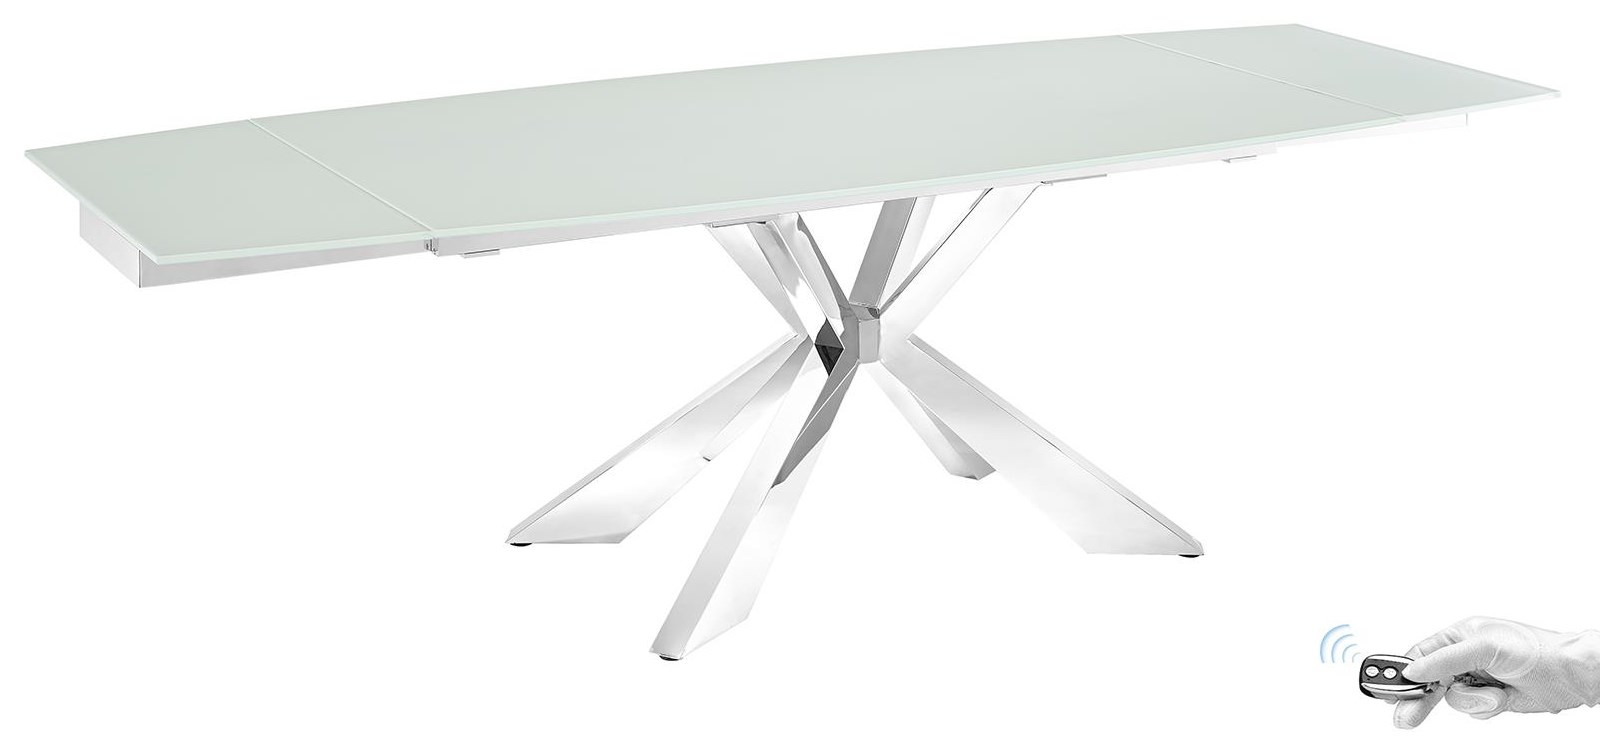 Icon Motorized Glass Extension Table Icon Motorized Glass Extension Table by Casabianca at Baer's Furniture